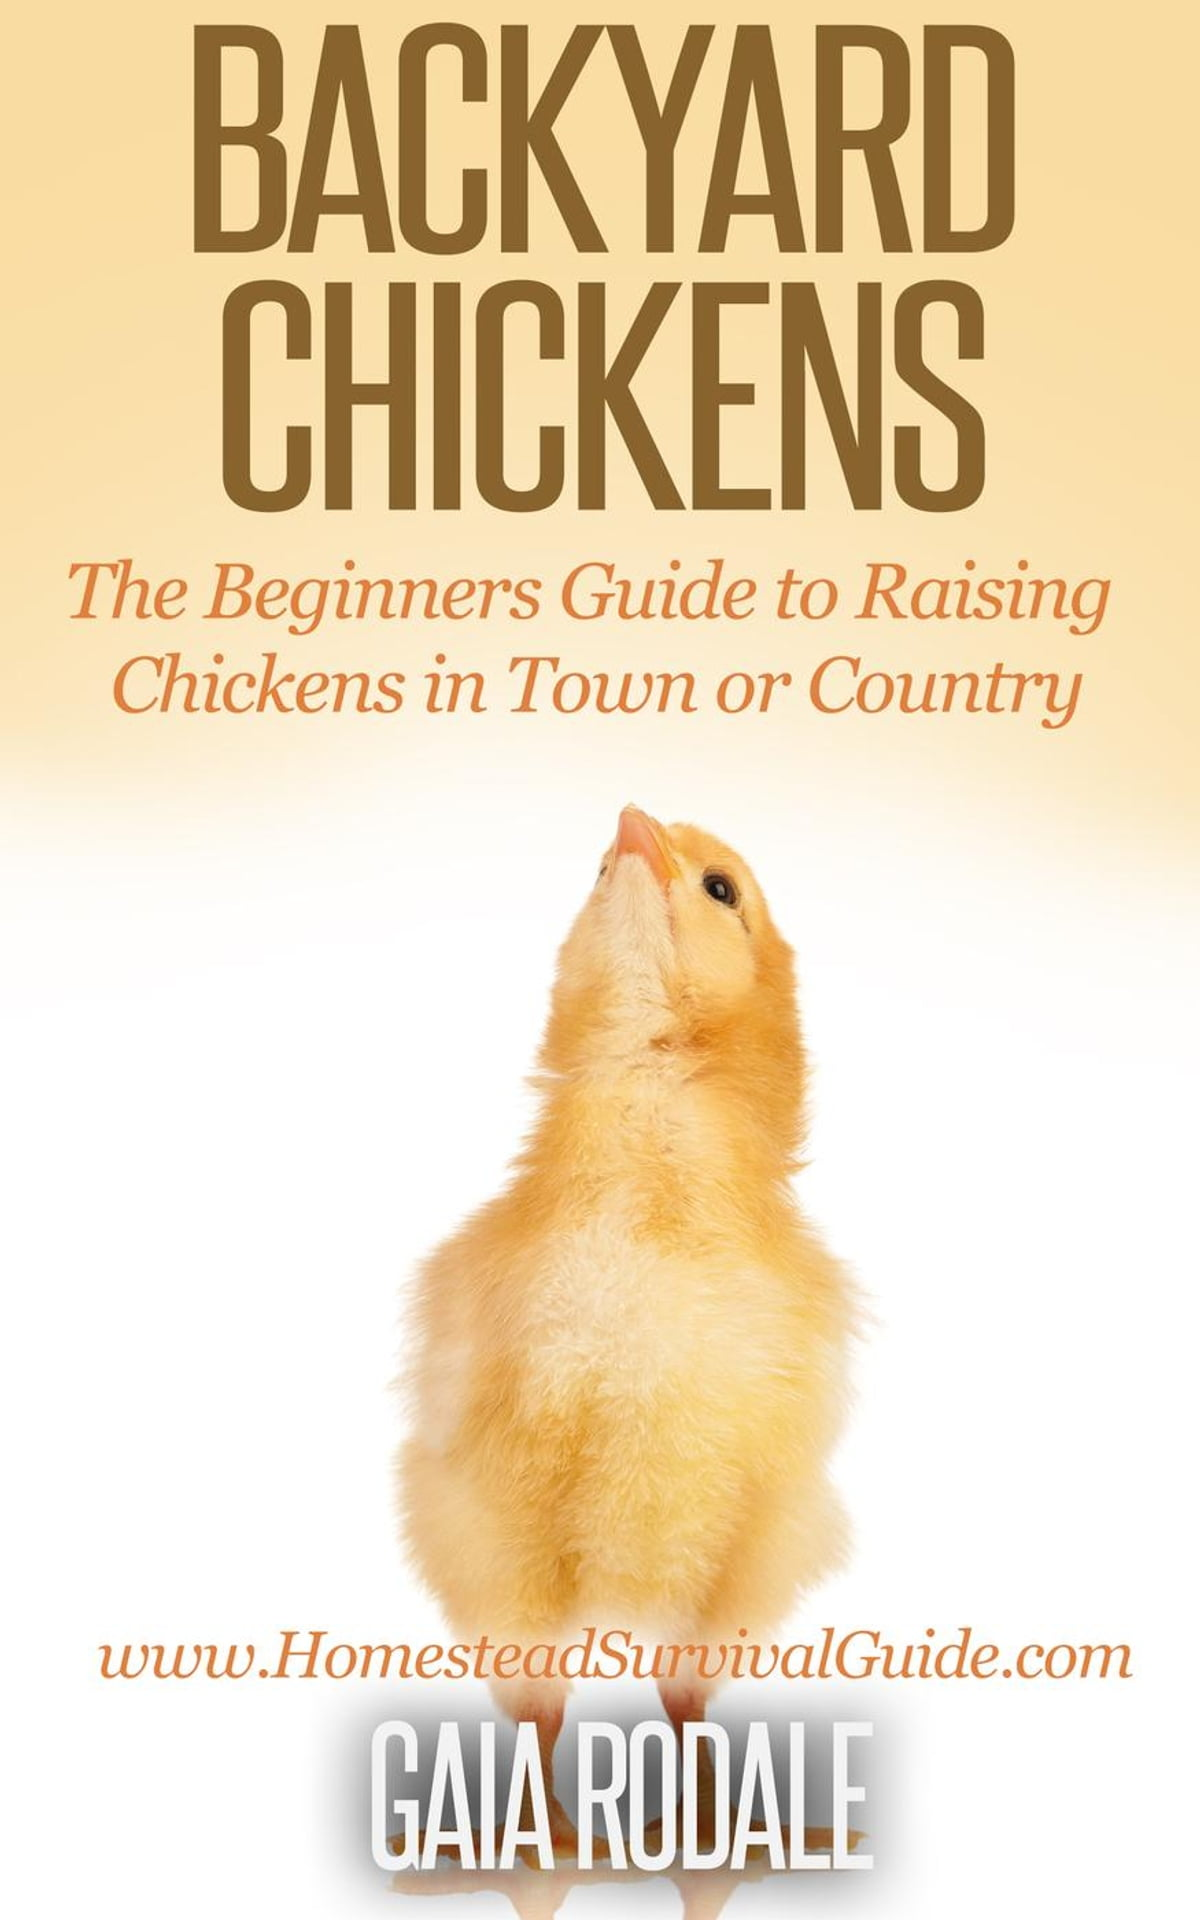 Backyard Chickens The Beginners Guide To Raising Chickens In Town